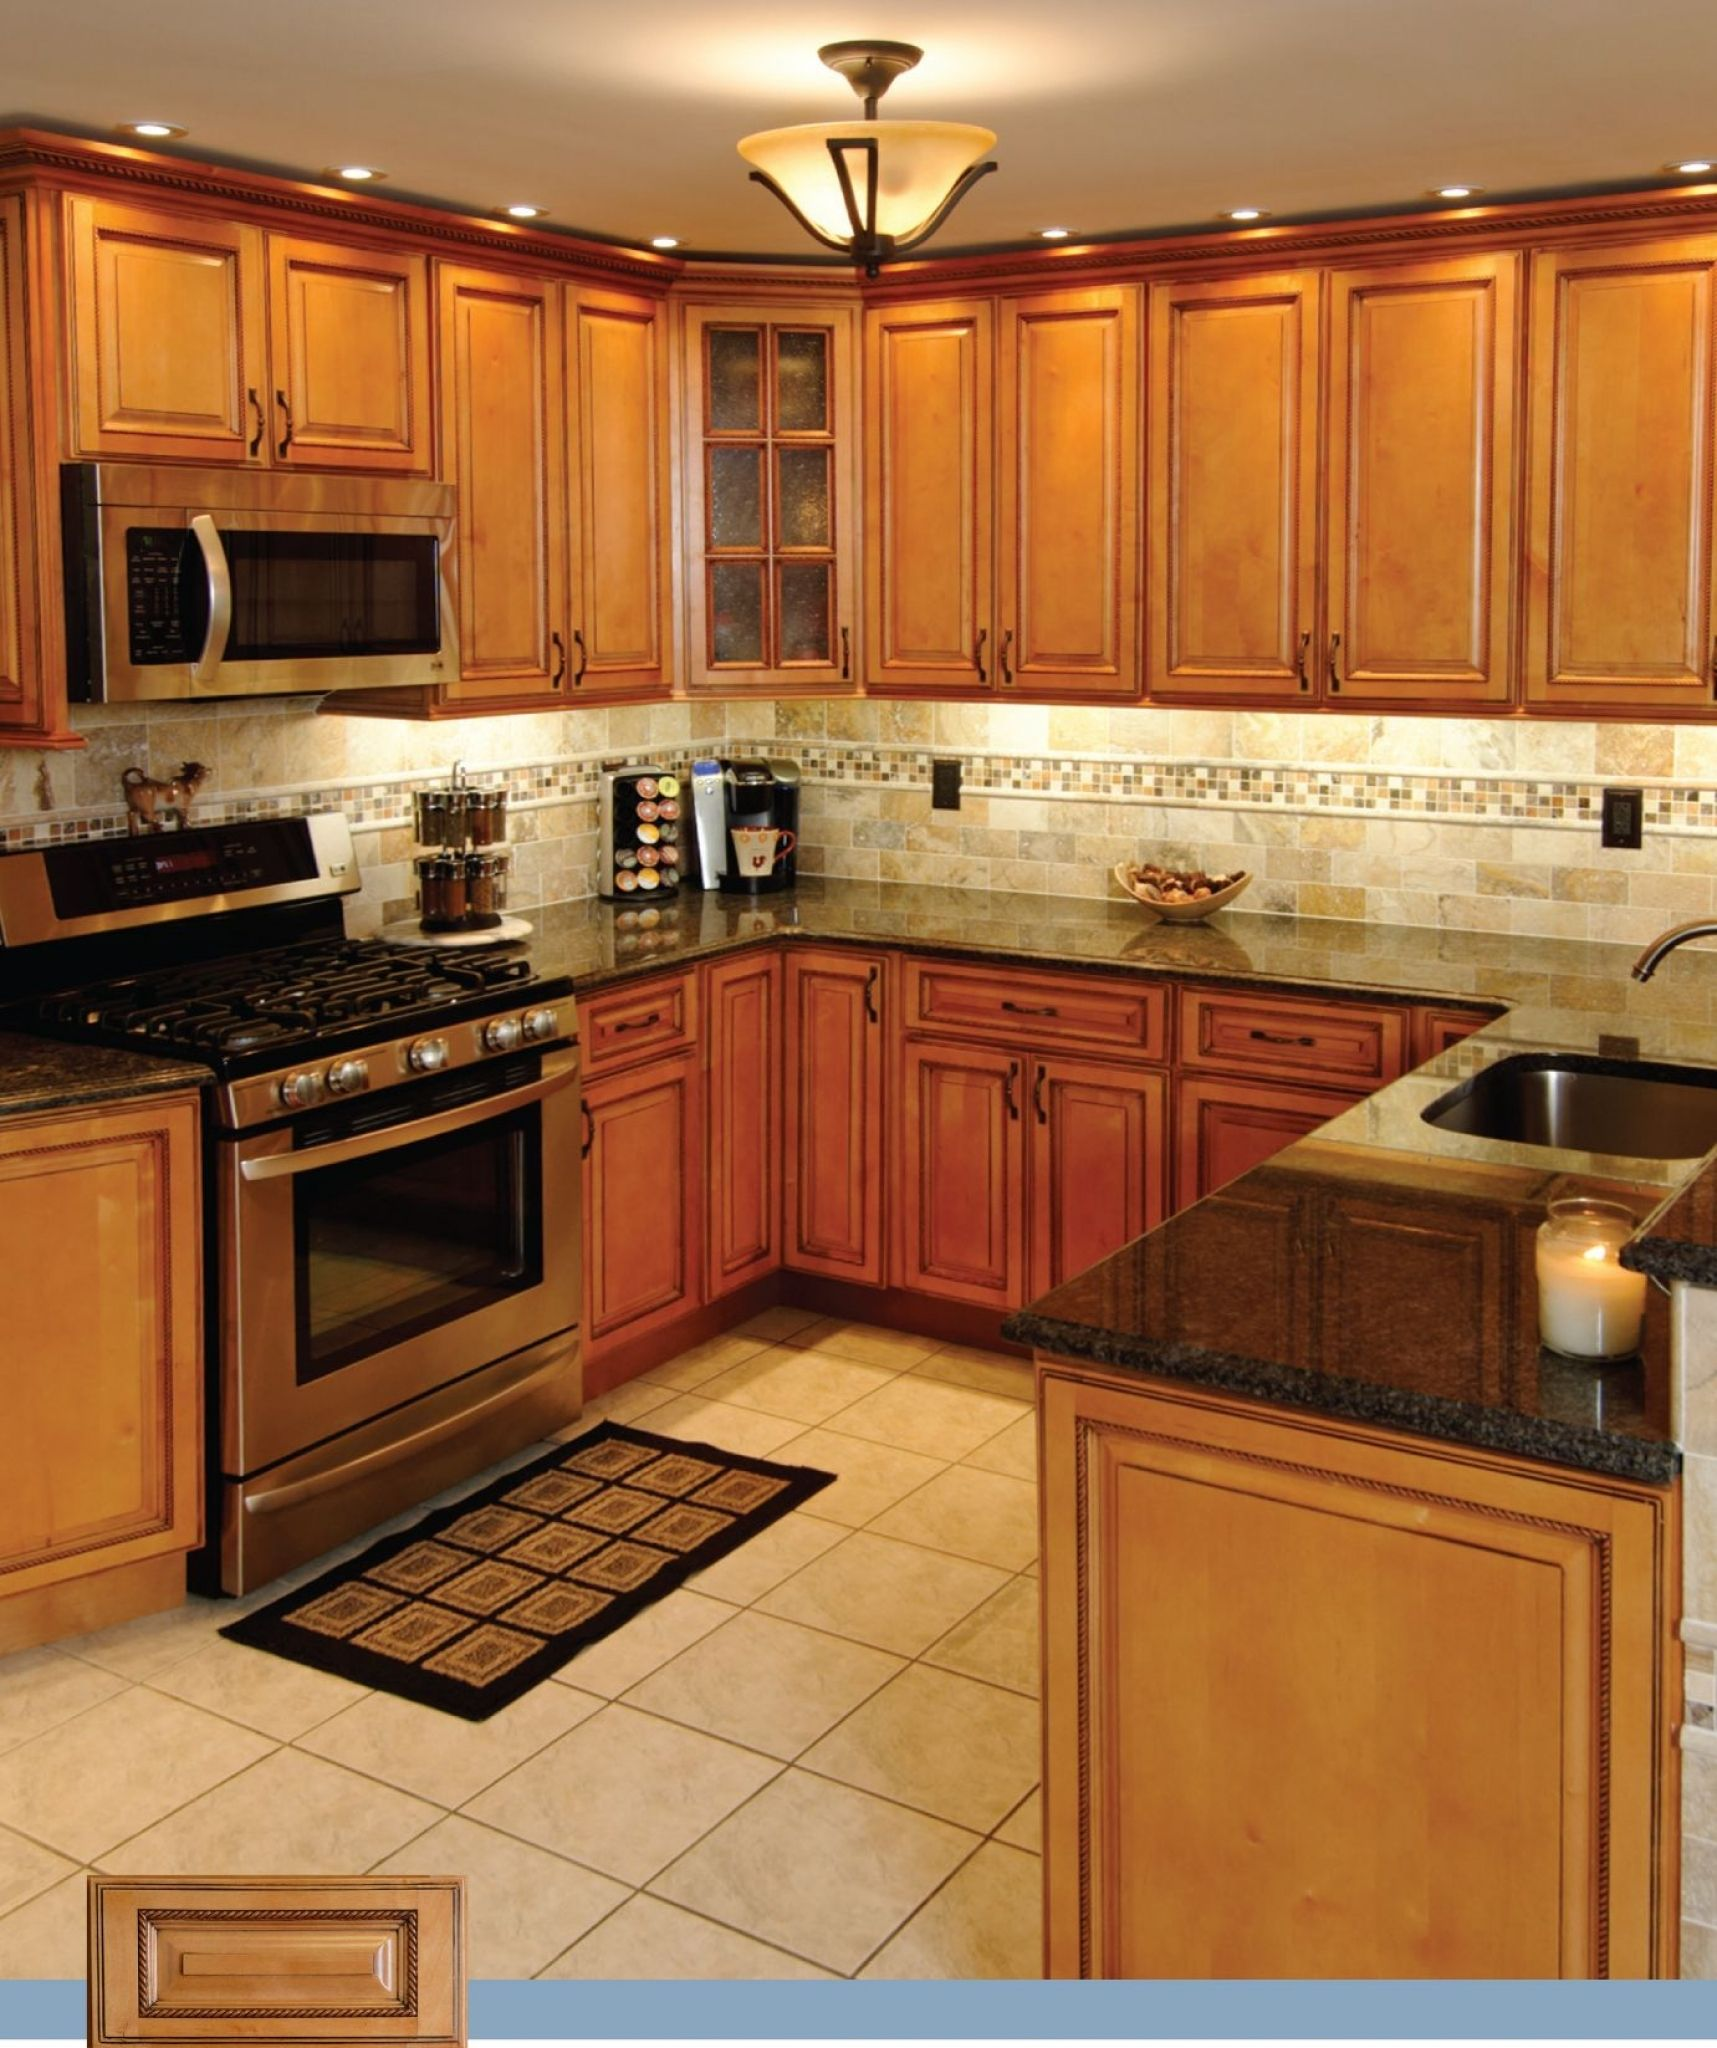 Kitchen cabinets dallastown pa - Kitchen Cabinets York Pa Kitchen Cabinet Inserts Ideas Check More At Http